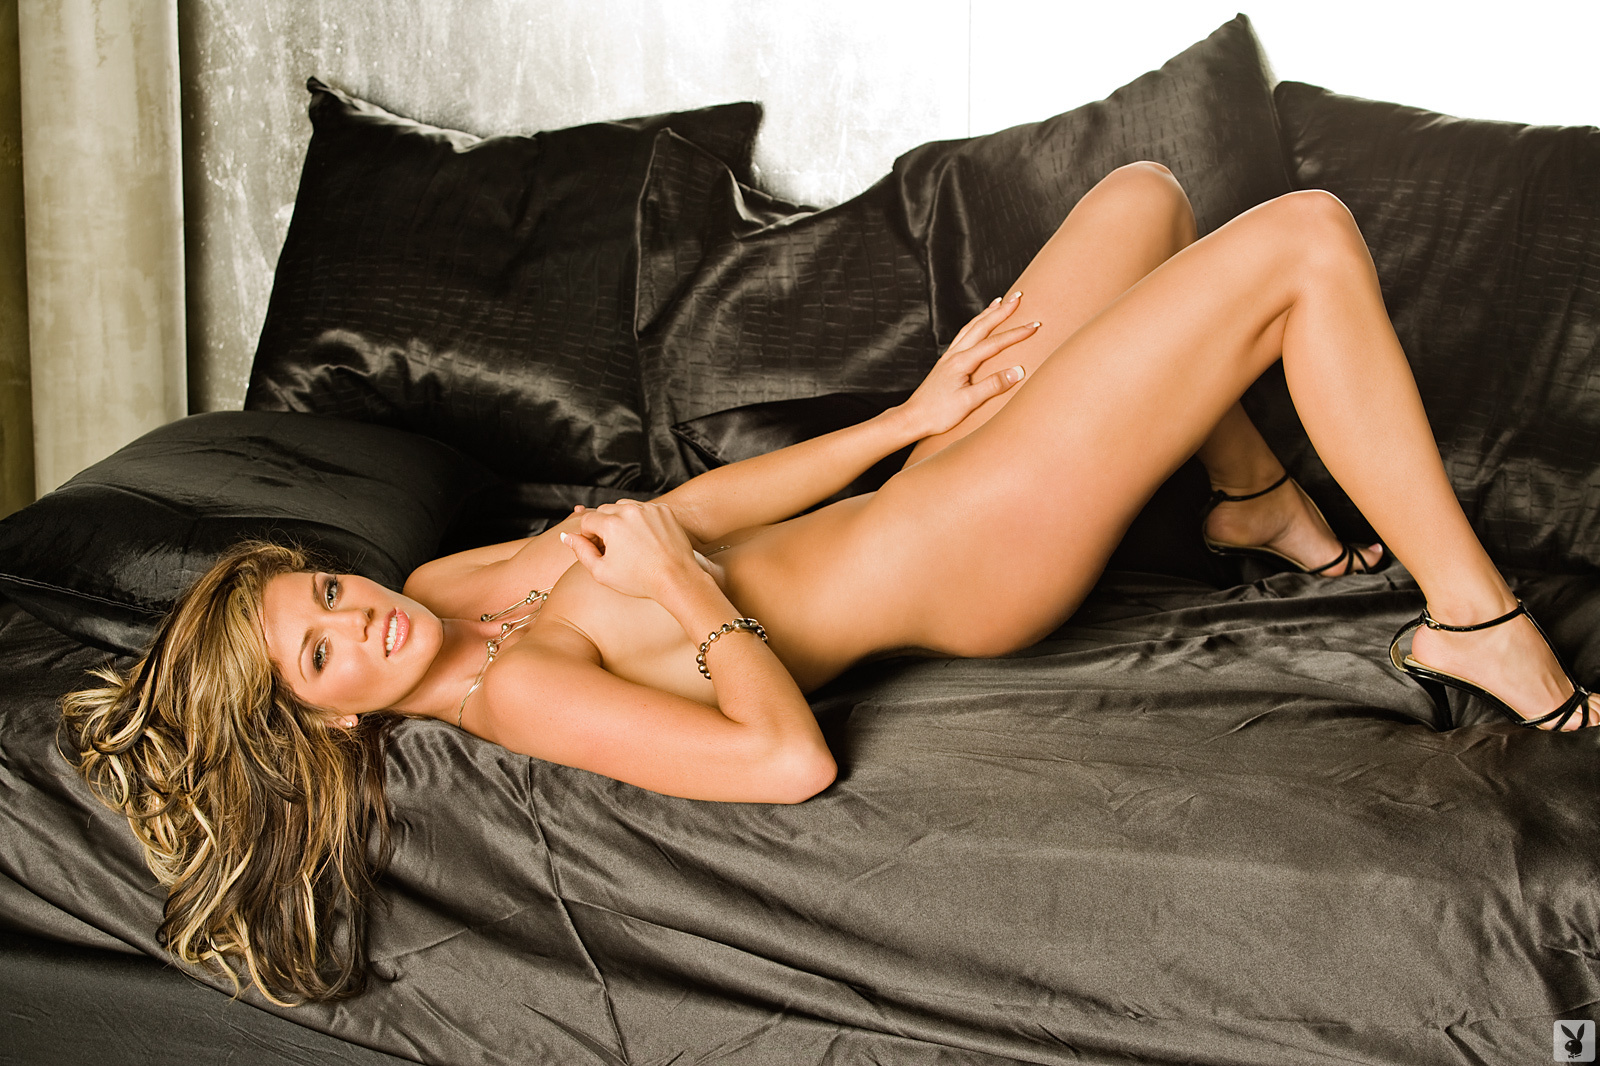 Playmate Exclusive May 2009 Crystal Mccahill0017